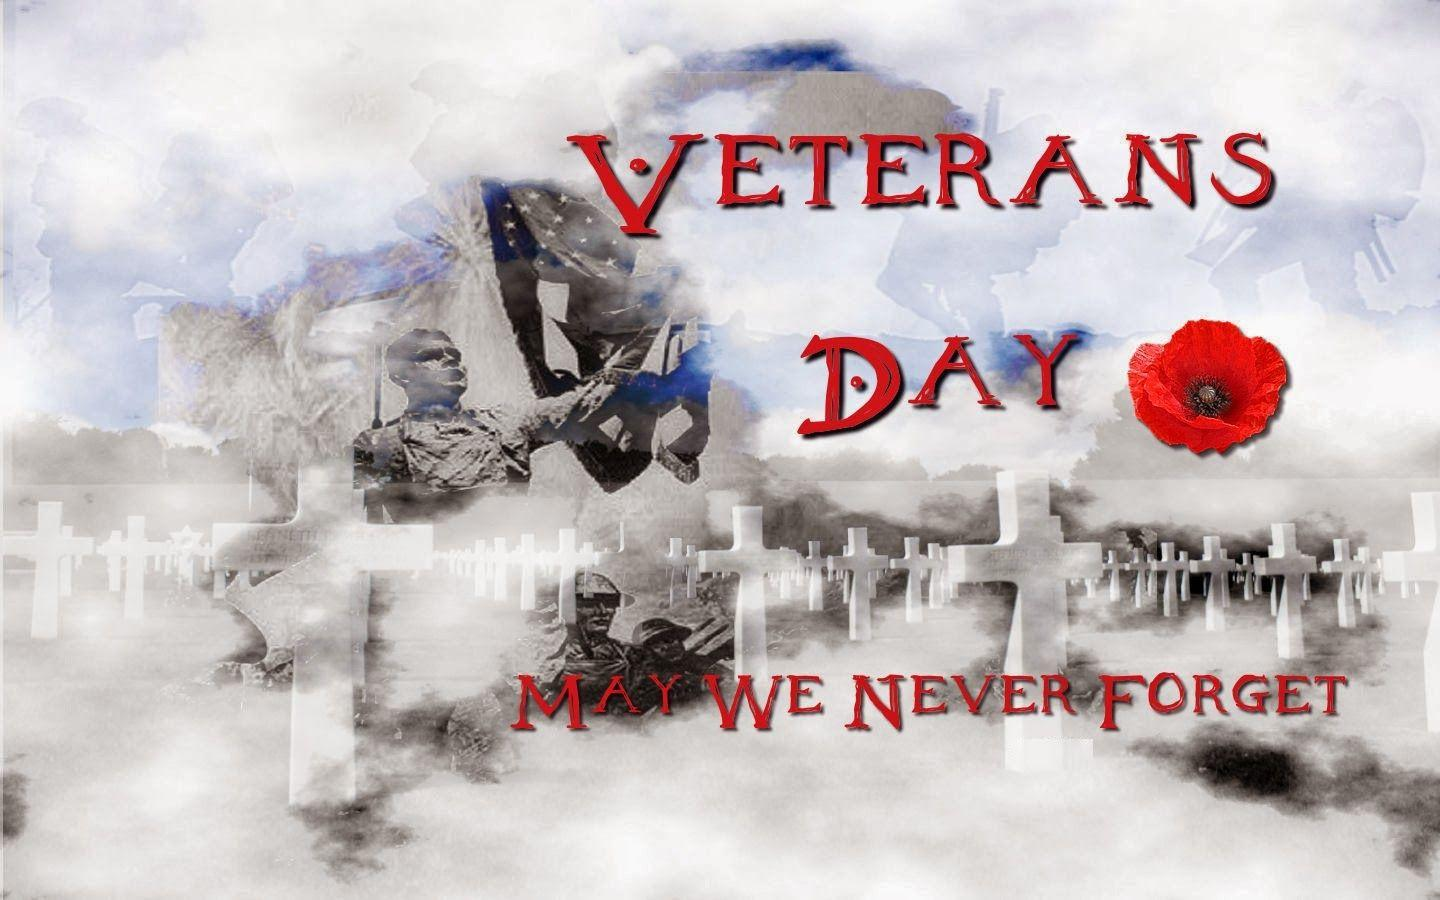 Veterans Day Wallpapers Free Download | HD Wallpapers | Pinterest ...